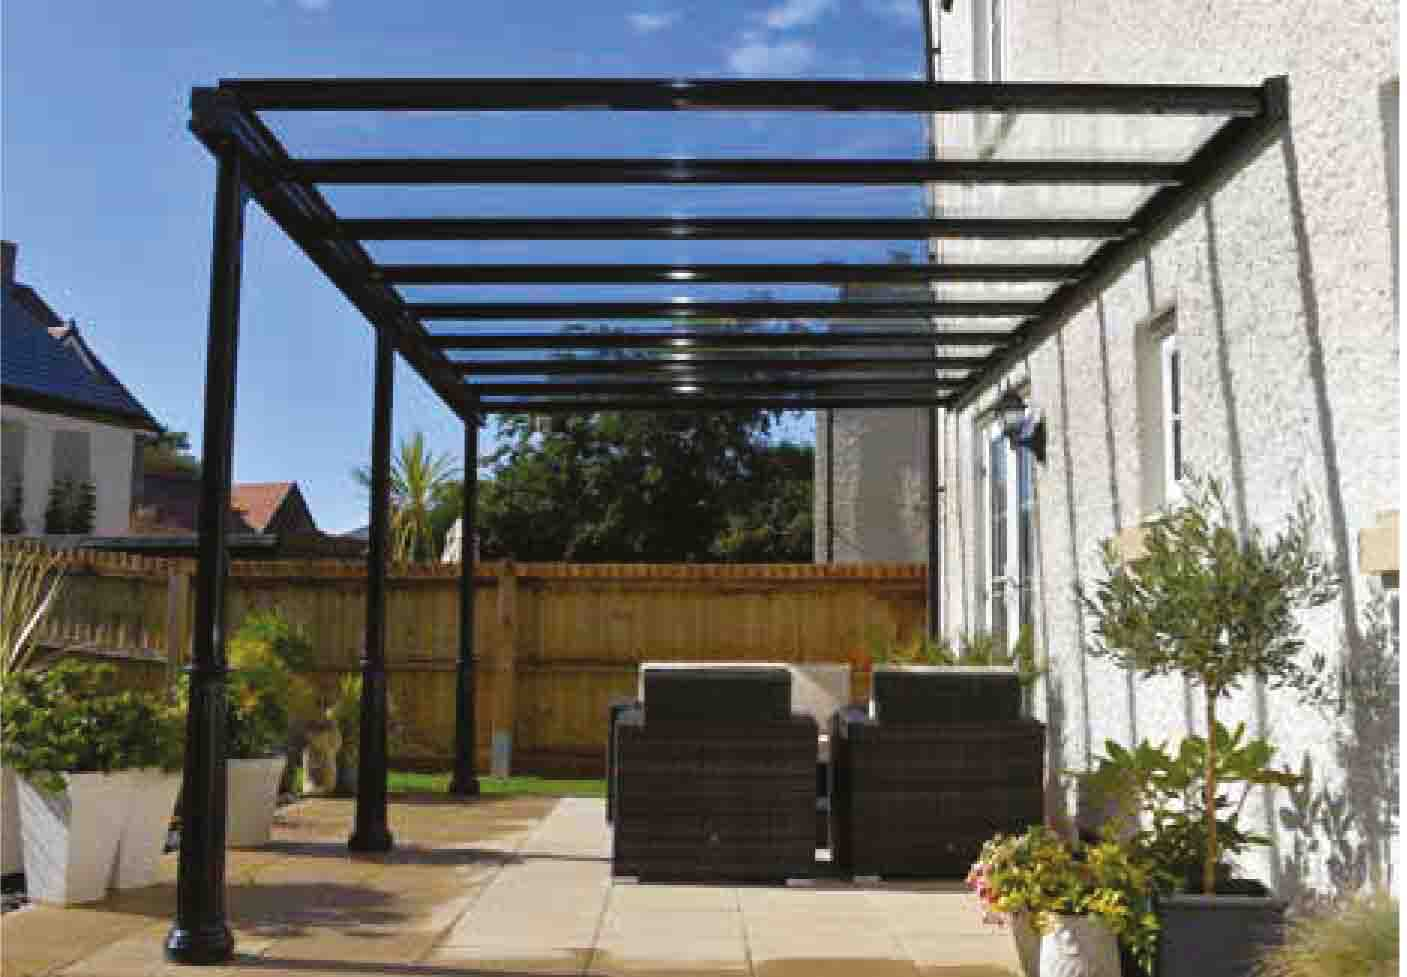 Lean to Glass Roof image from Canopies.ie